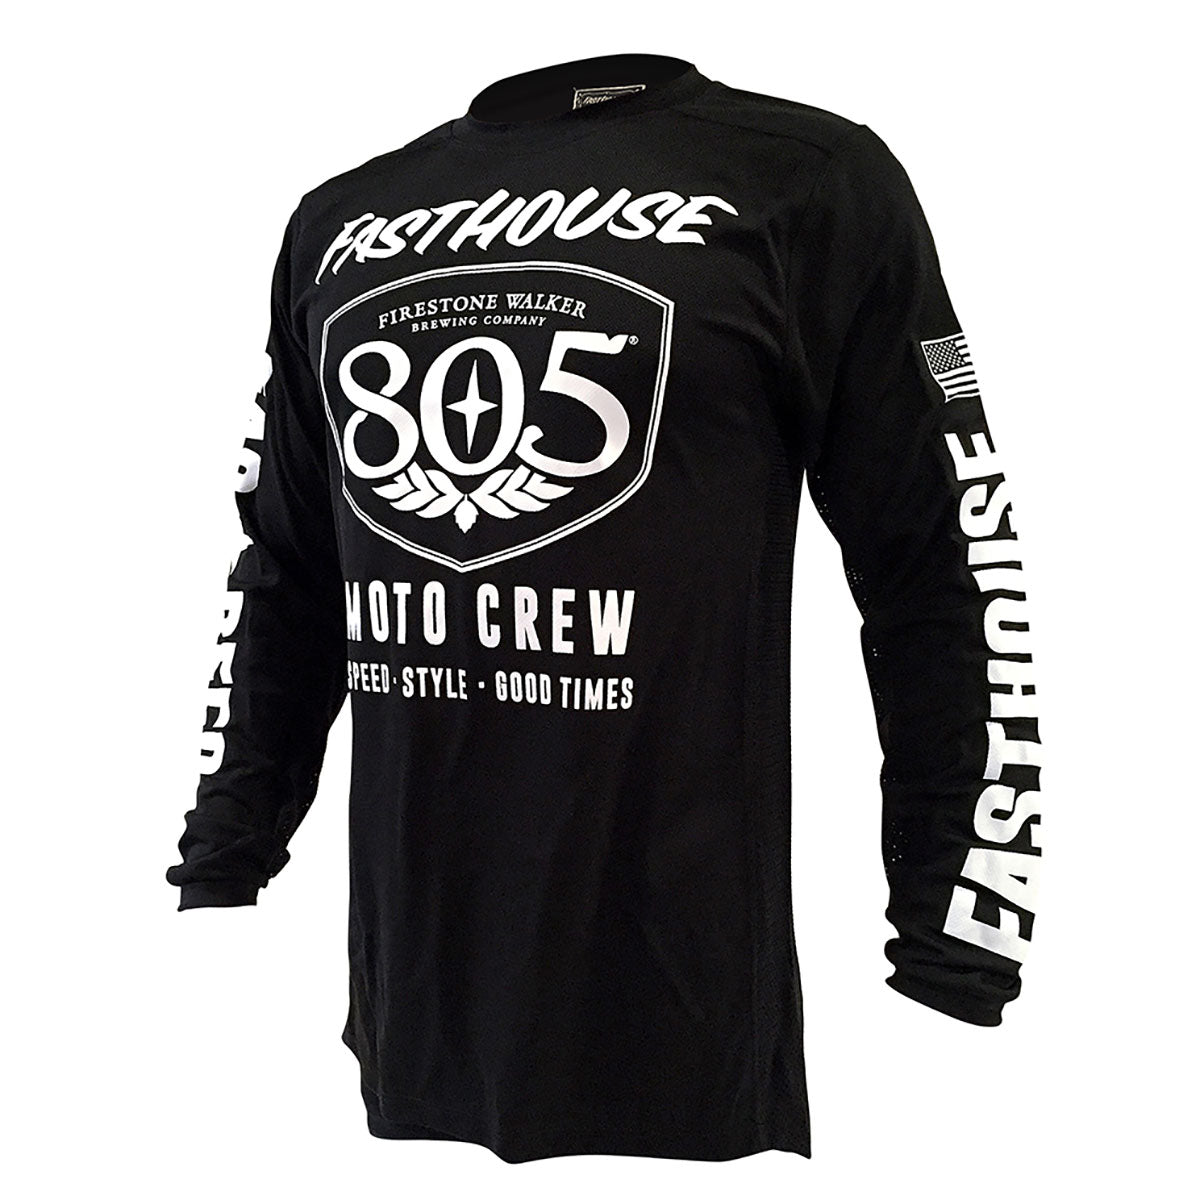 Fasthouse - 805 Shield Jersey - Black